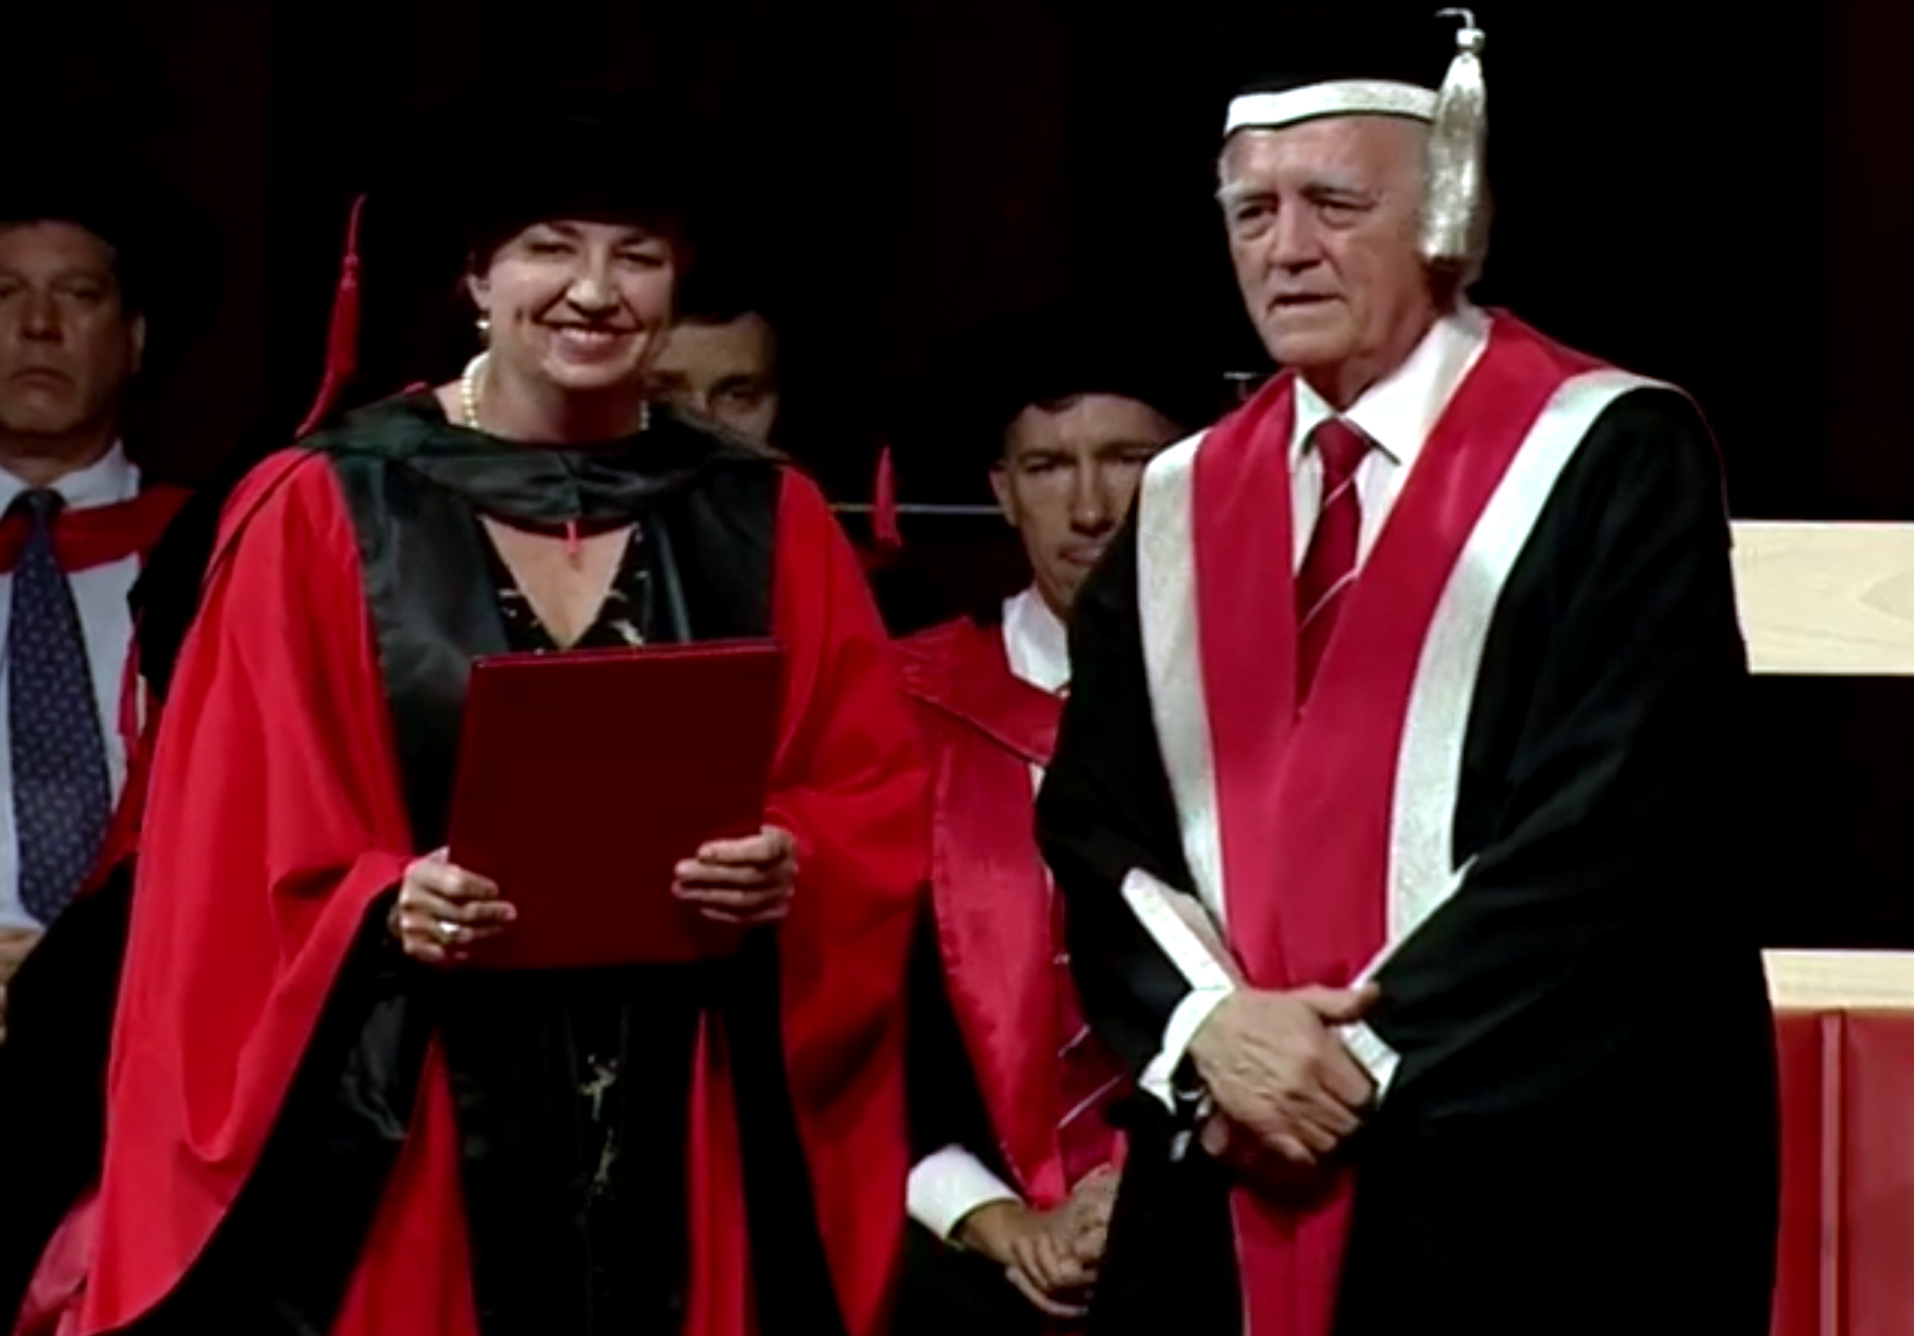 Anna Bligh with Griffith University Chancellor Henry Smerdon